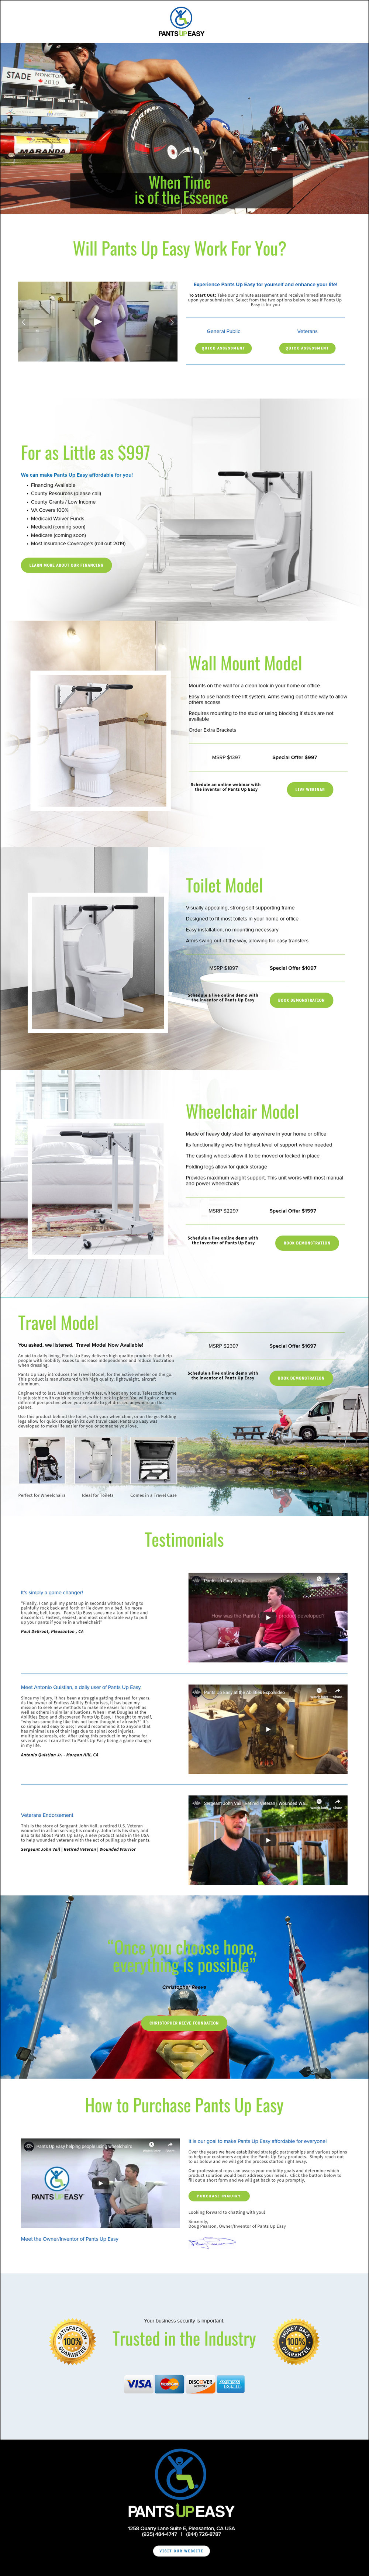 Pants Up Easy - Landing Page